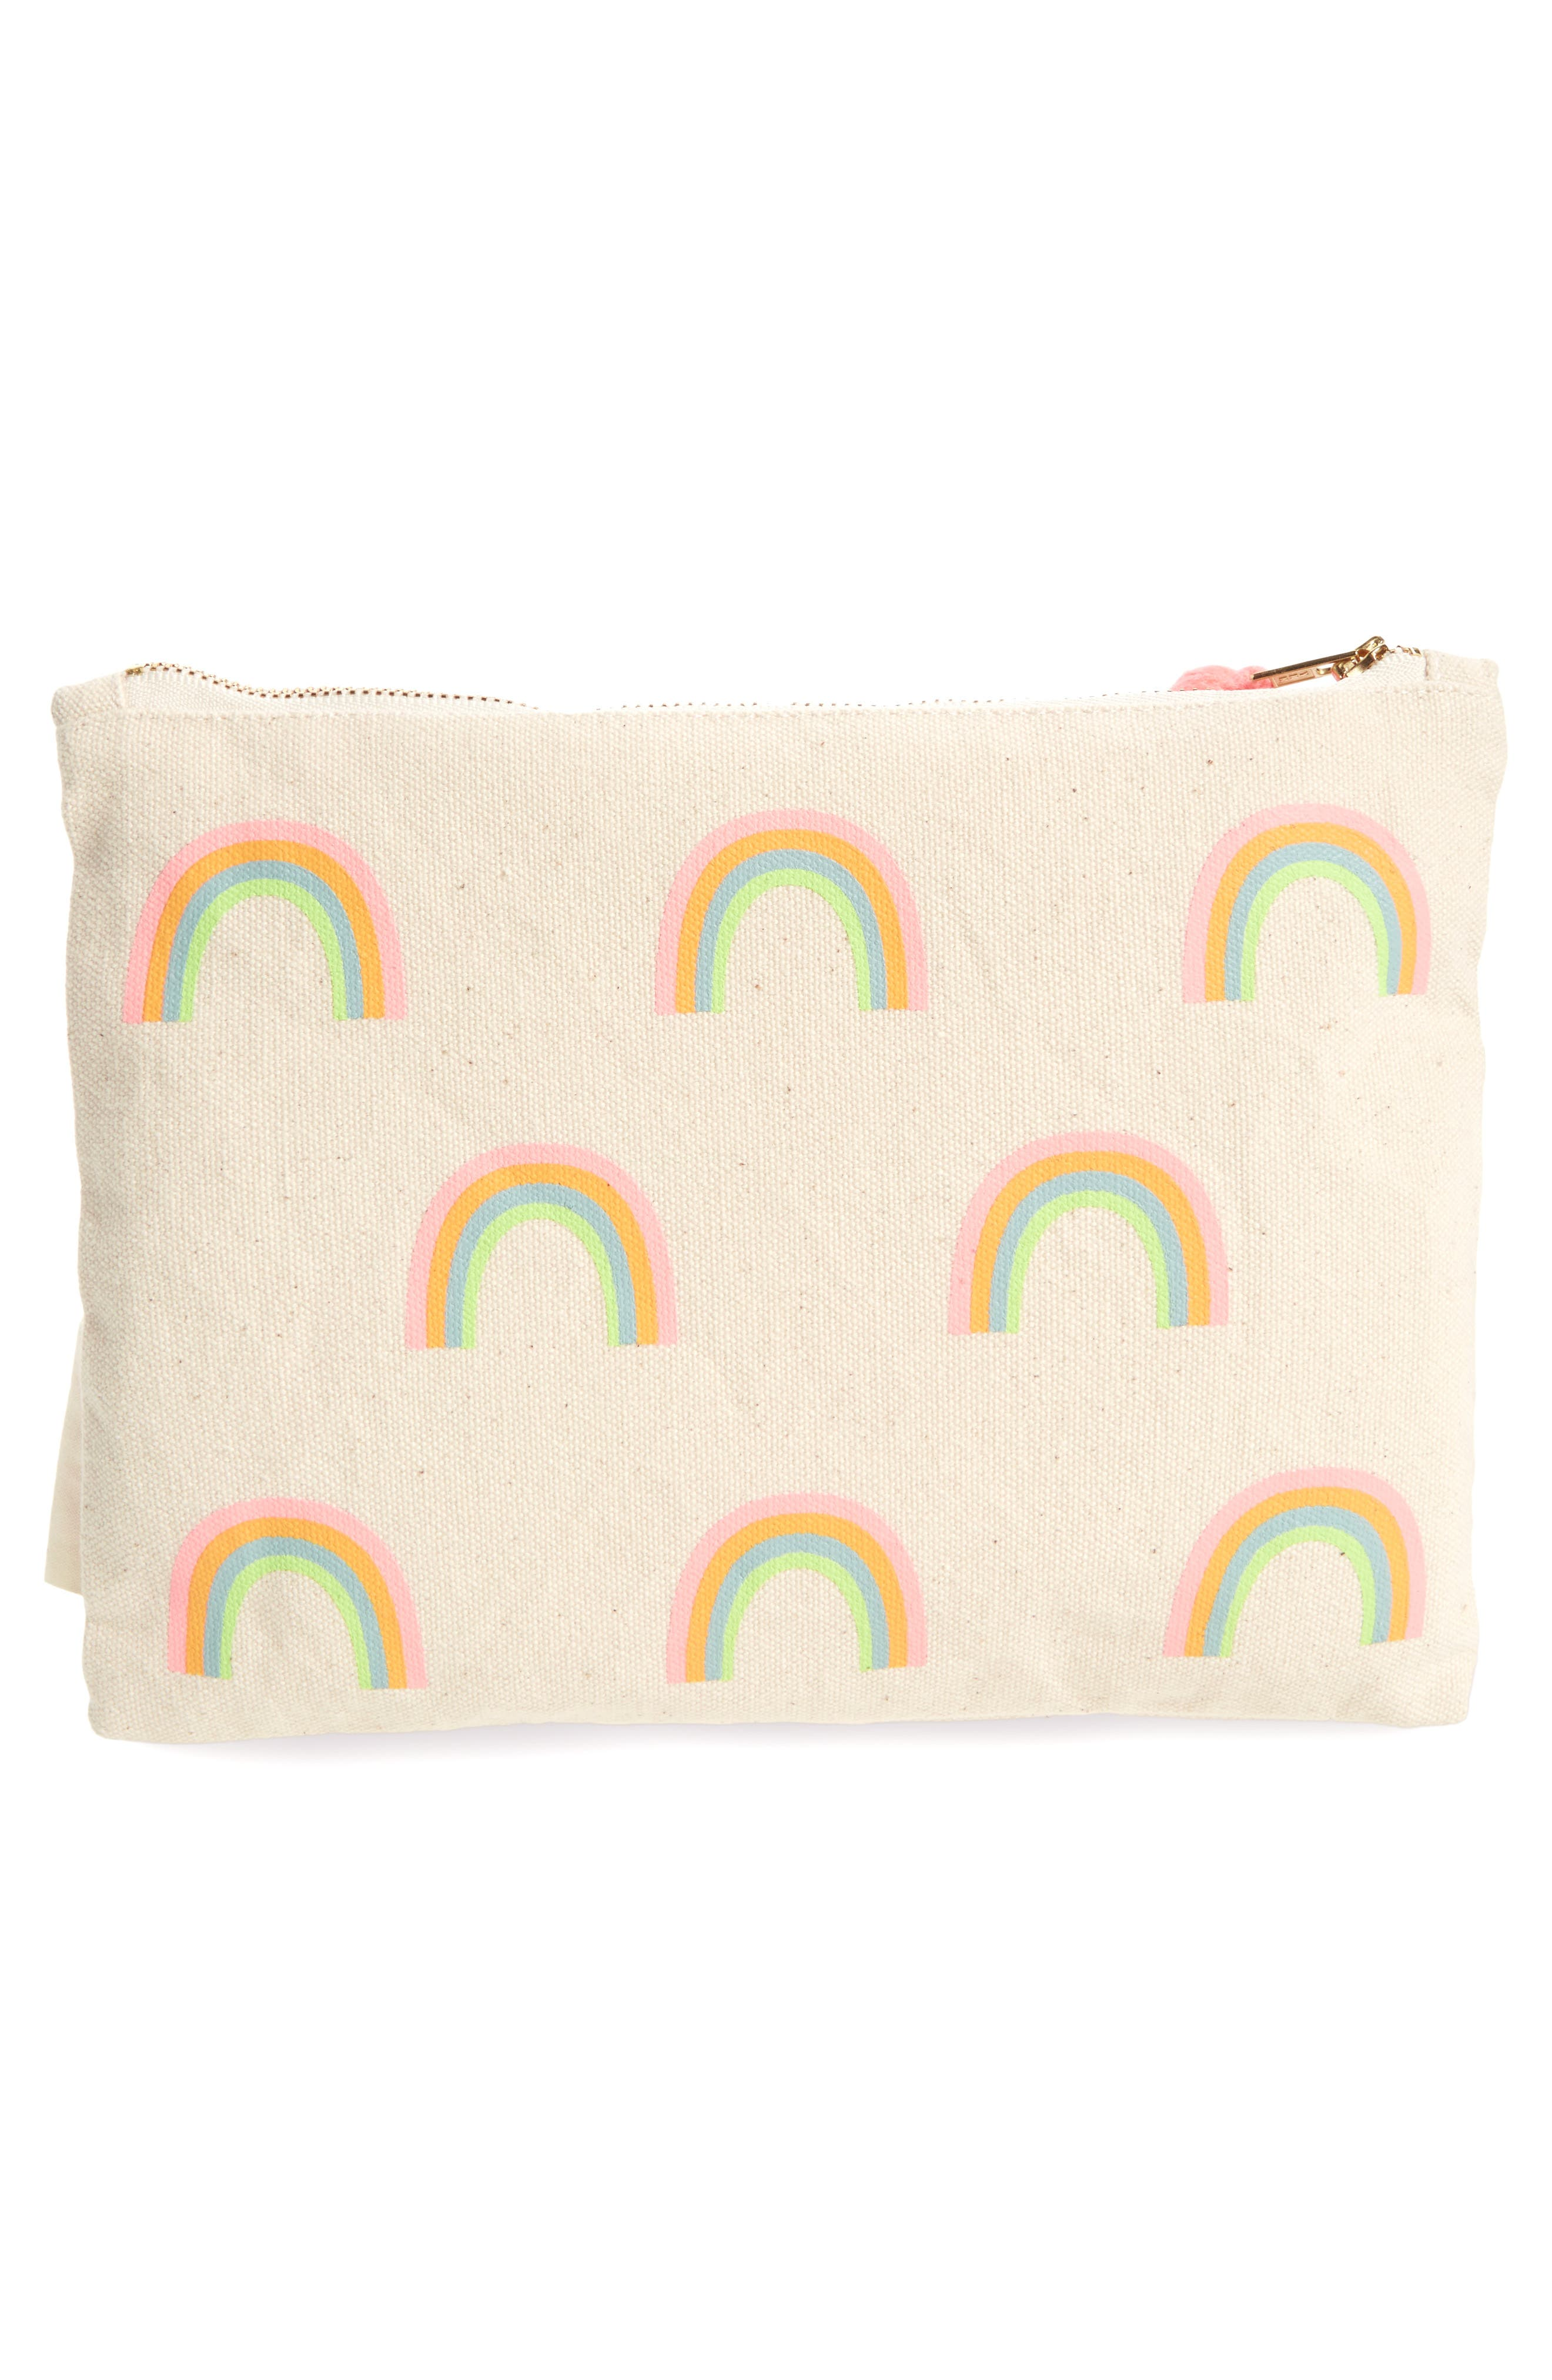 Large Rainbow Zip Pouch,                             Alternate thumbnail 3, color,                             Cream Multi